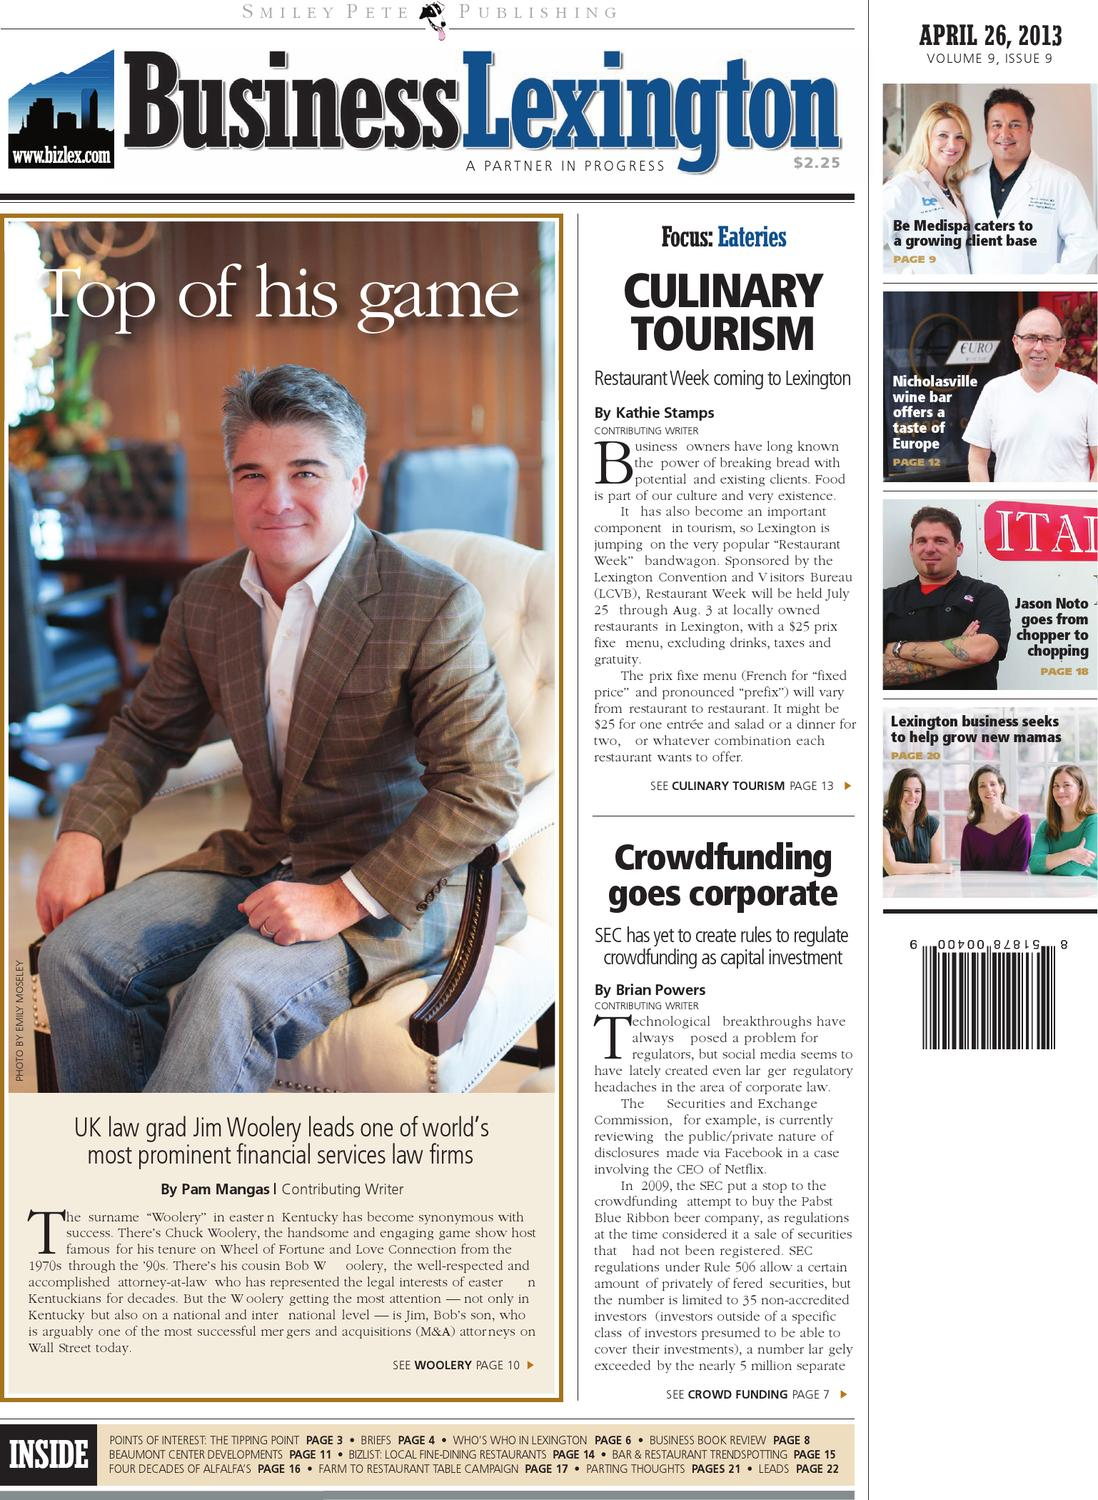 Business lexington april 26 2013 by smiley pete publishing issuu malvernweather Gallery